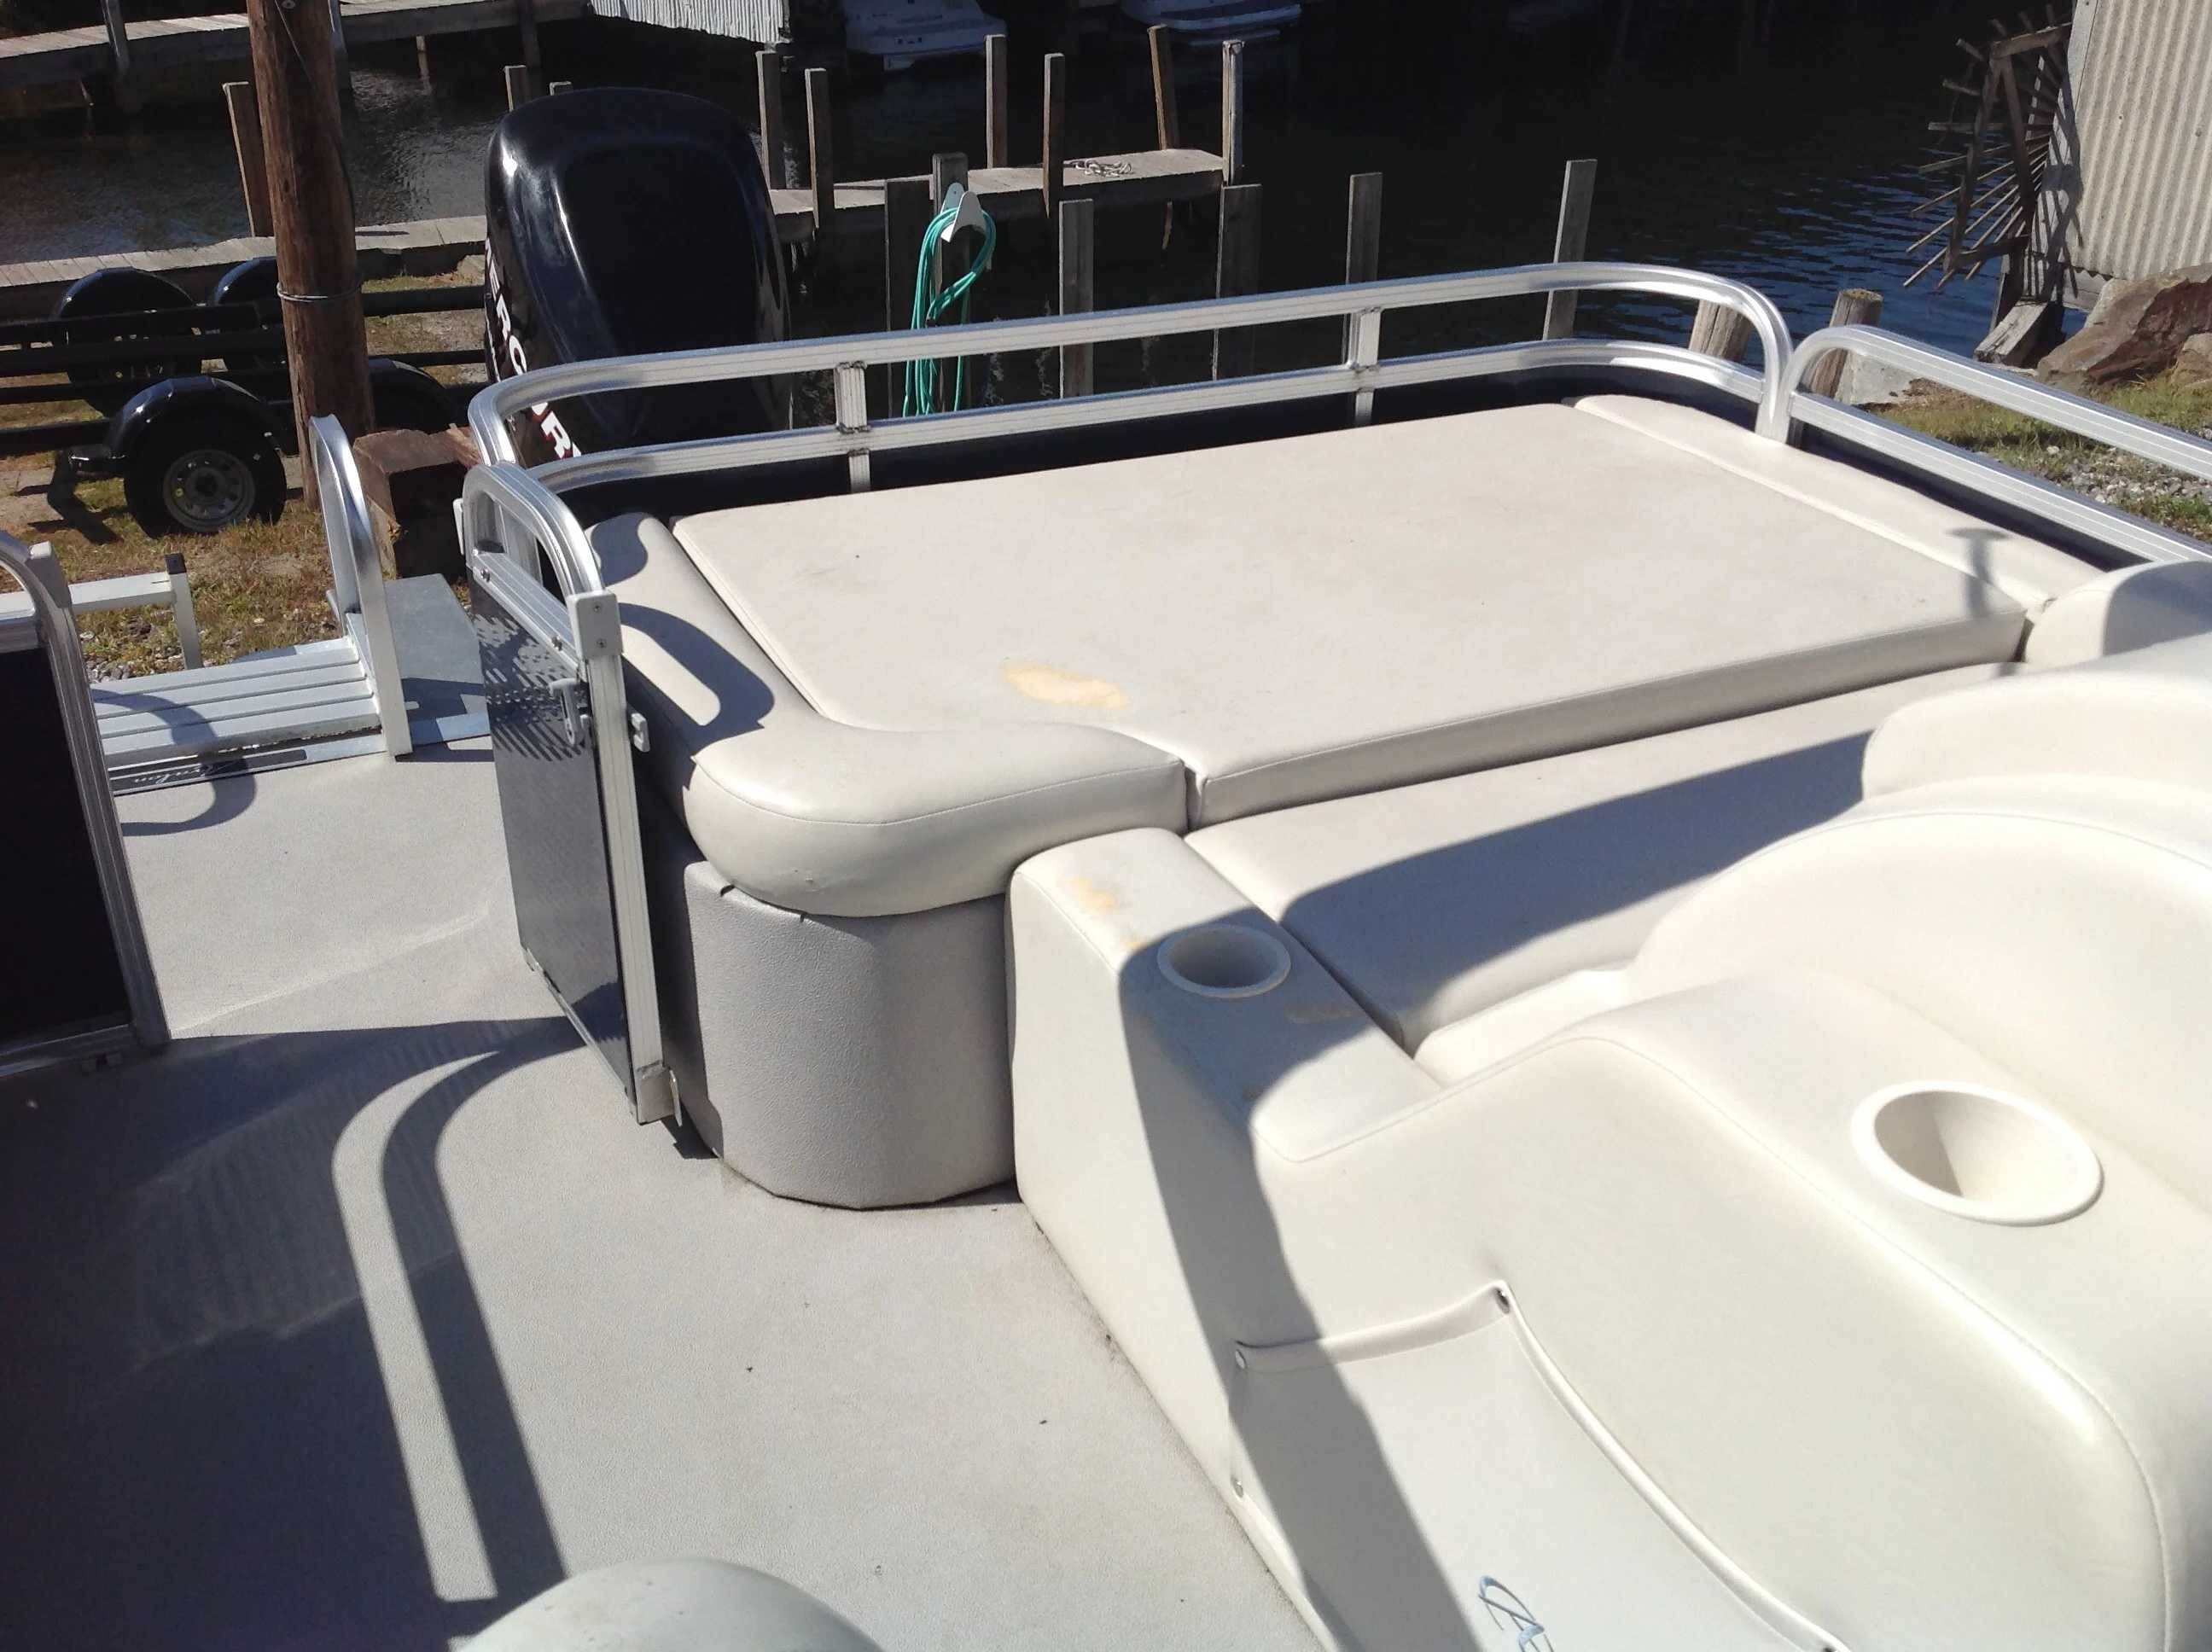 2012 Avalon boat for sale, model of the boat is Catalina Drl 2485 & Image # 10 of 14